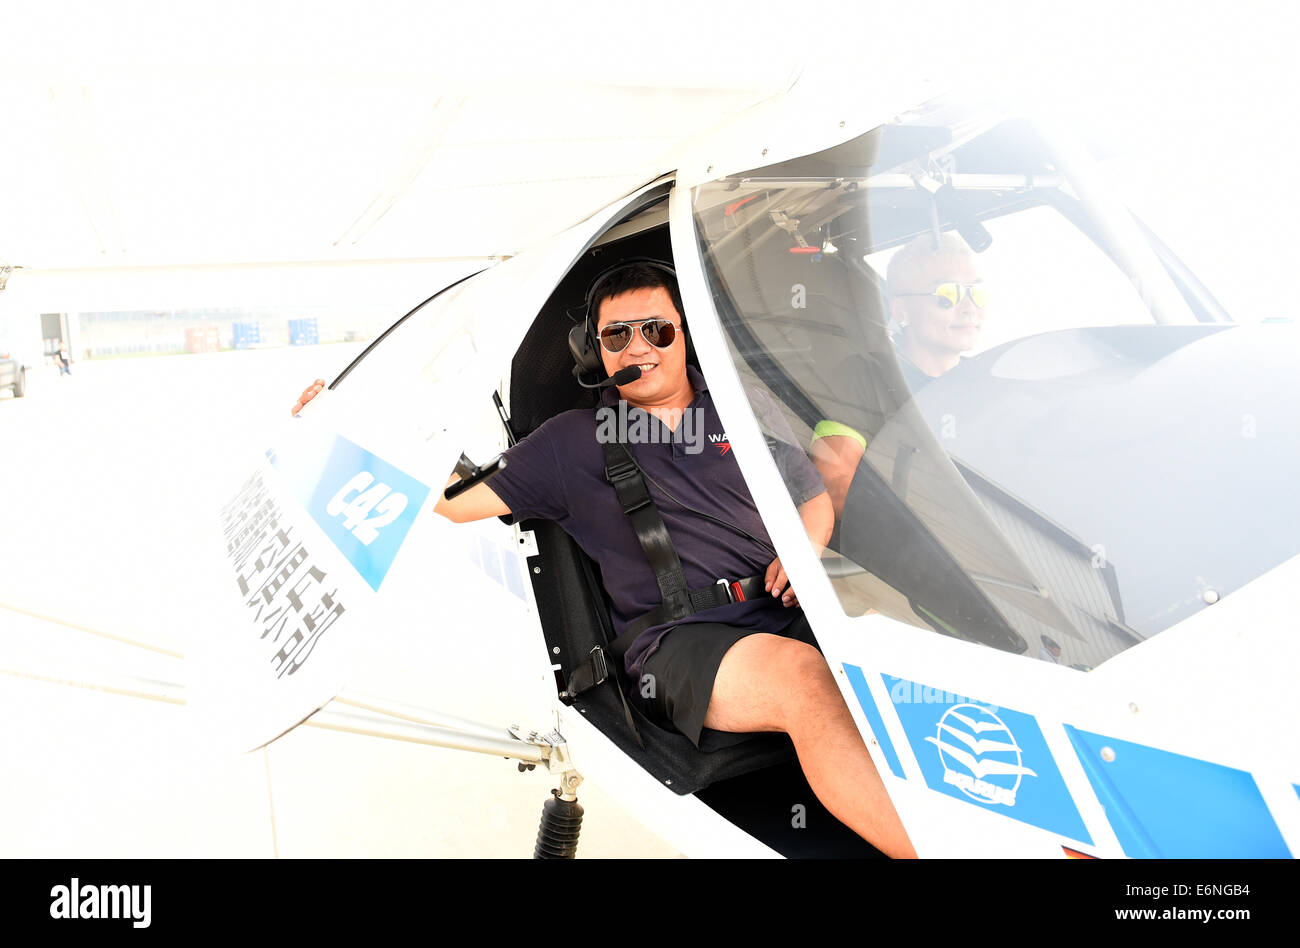 (140828) -- FAKU, Aug. 28, 2014 (Xinhua) -- Zhao Wei, leader of the Red Bull Aerobatic Team of China, takes part - Stock Image